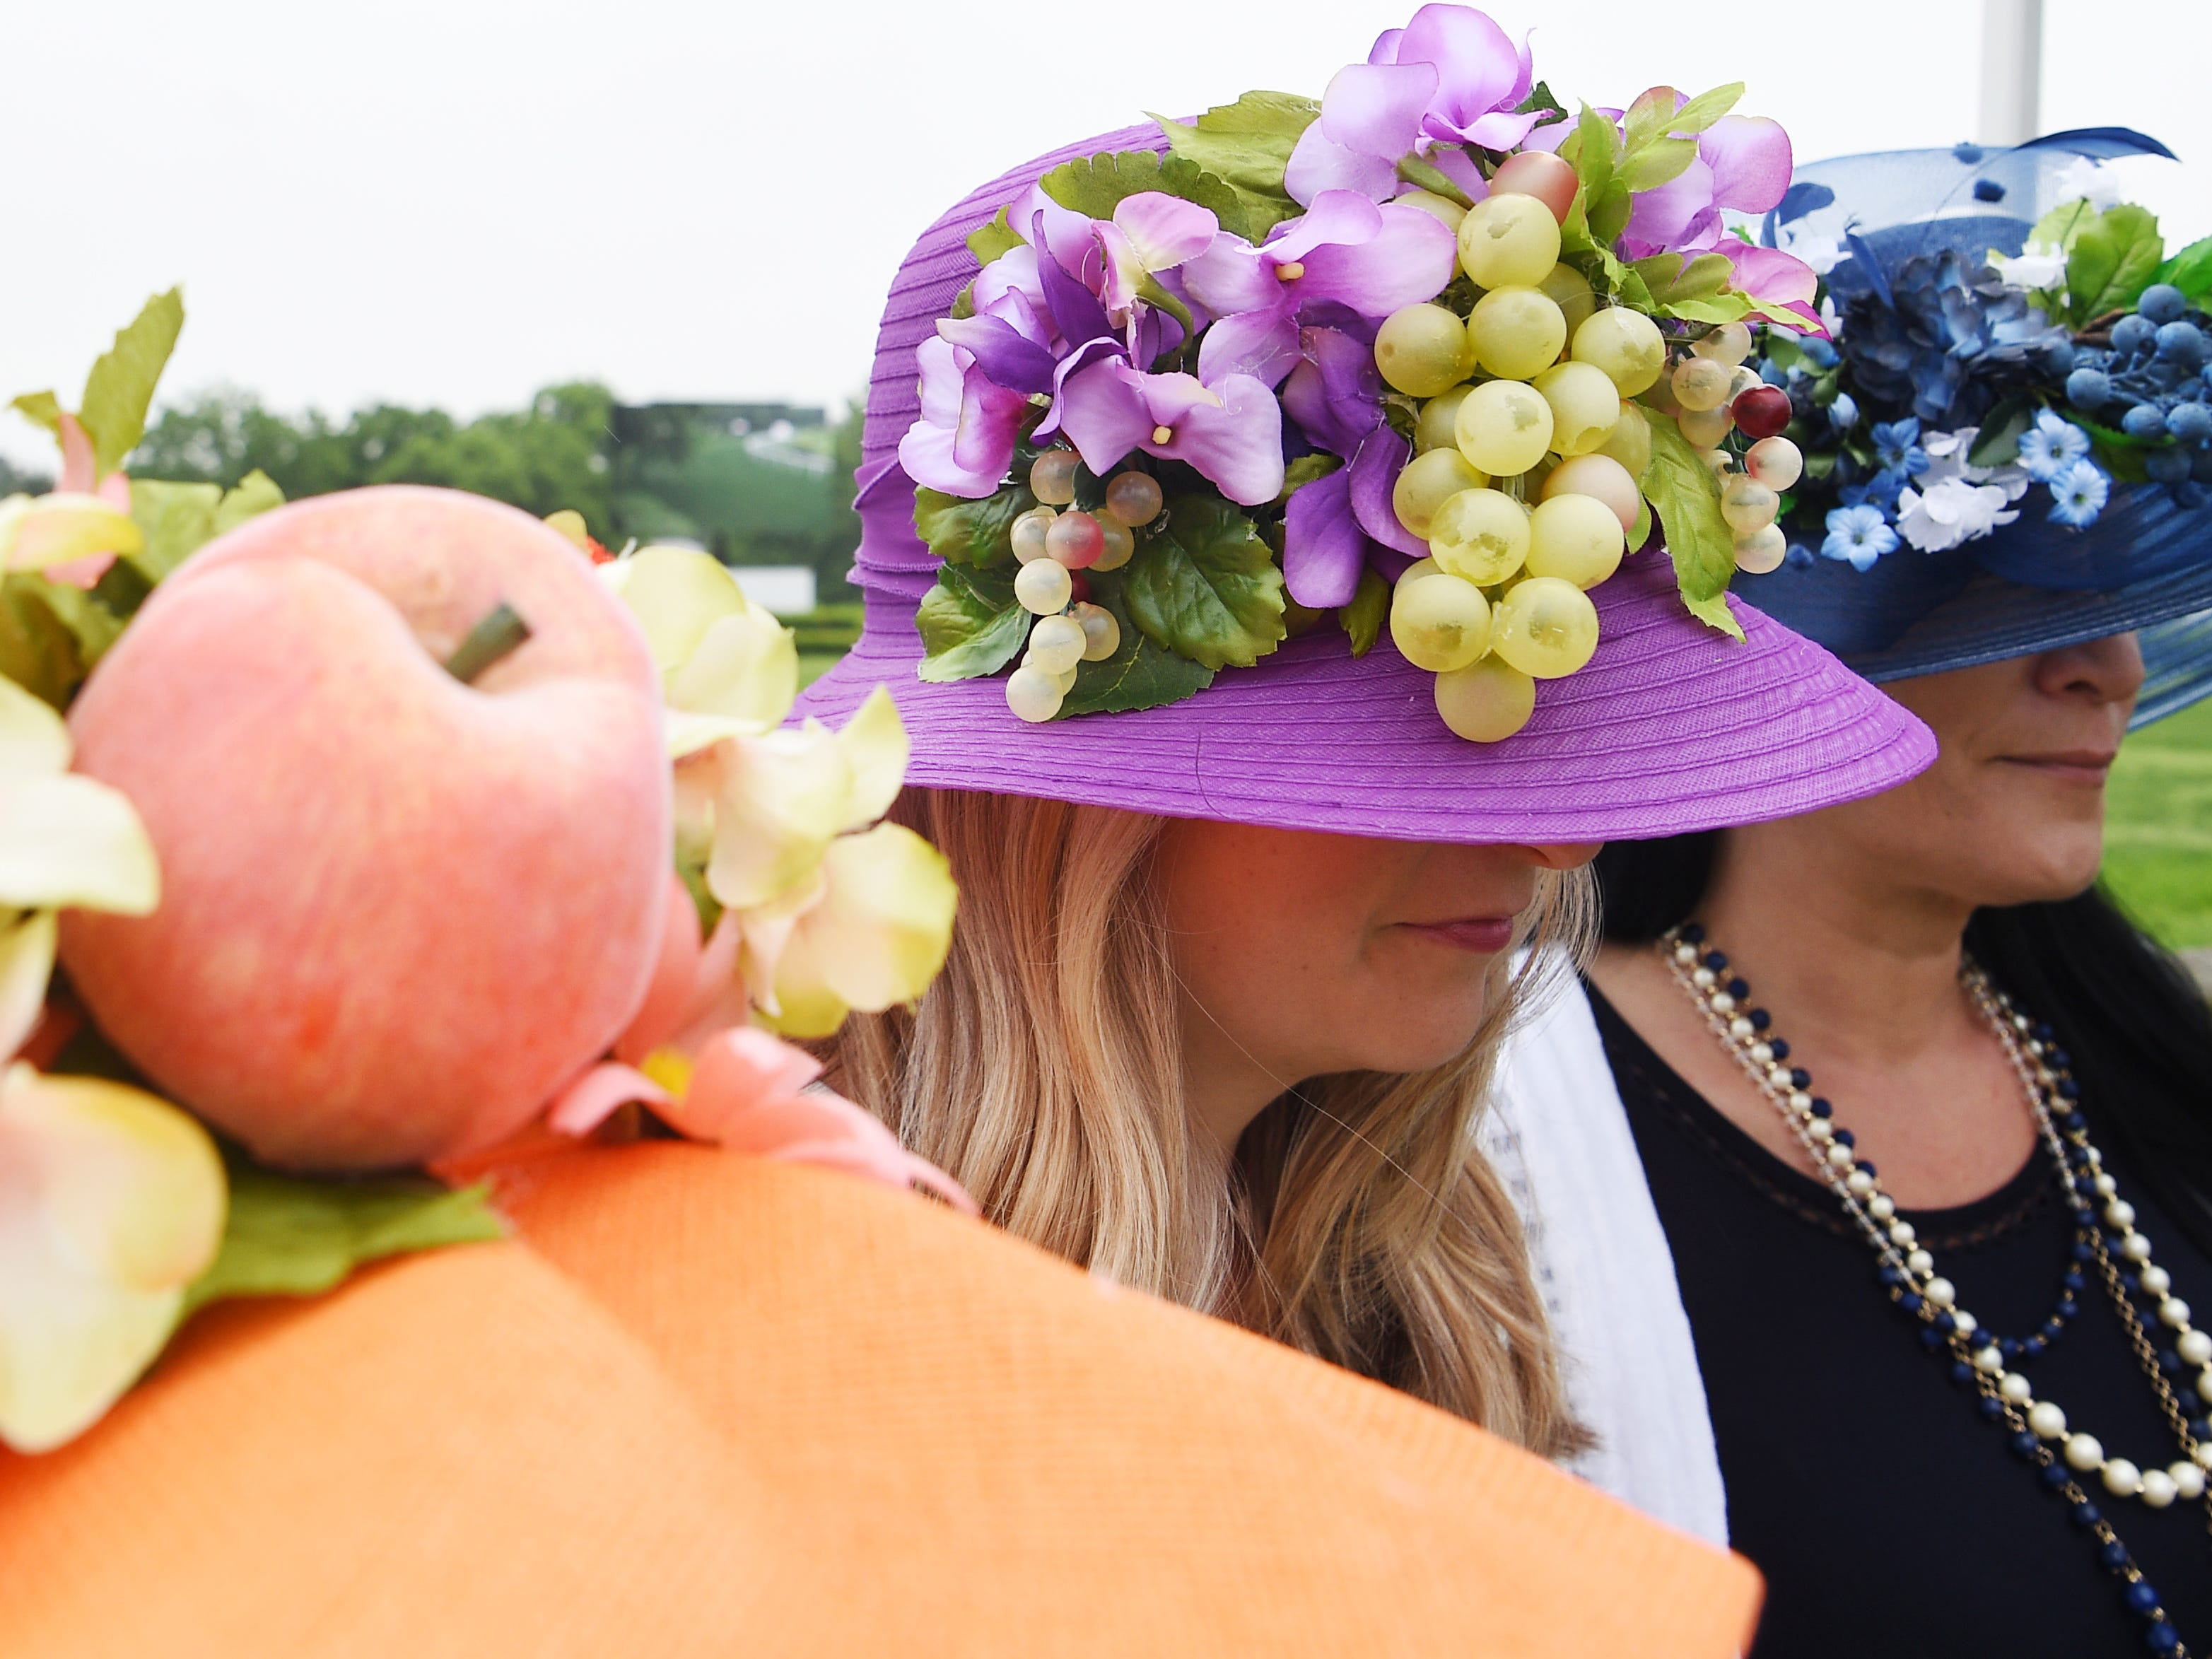 Casey Williams, Amanda Hurley, and Diana Sanderson wear handmade hats at the 78th Iroquois Steeplechase at Percy Warner park in Nashville on Saturday, May, 11, 2019.